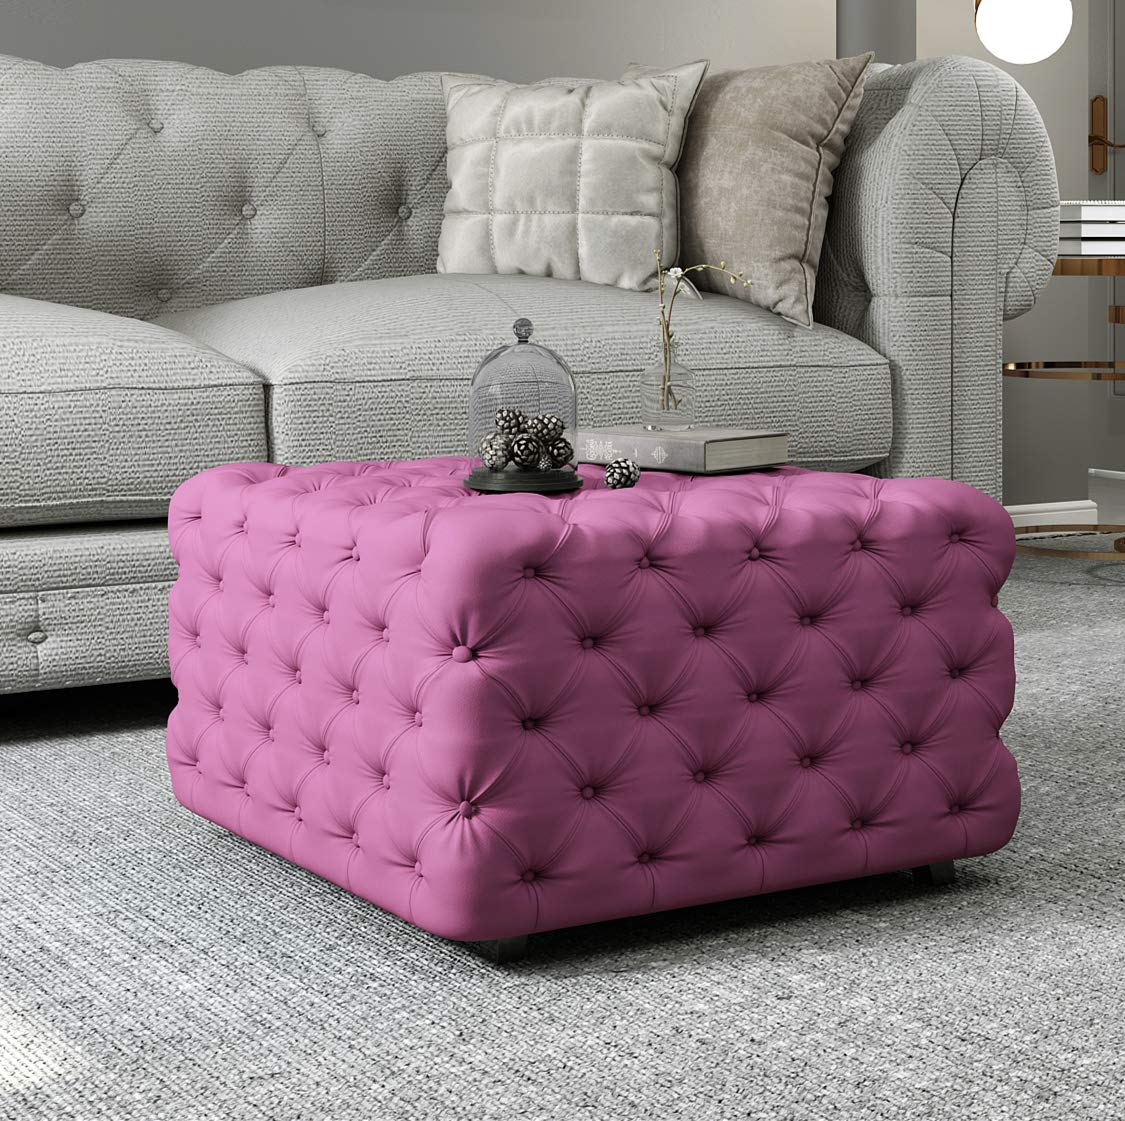 Joveco Ottoman Bench Tufted Velvet Stool for Living Room Purple Square Ottoman